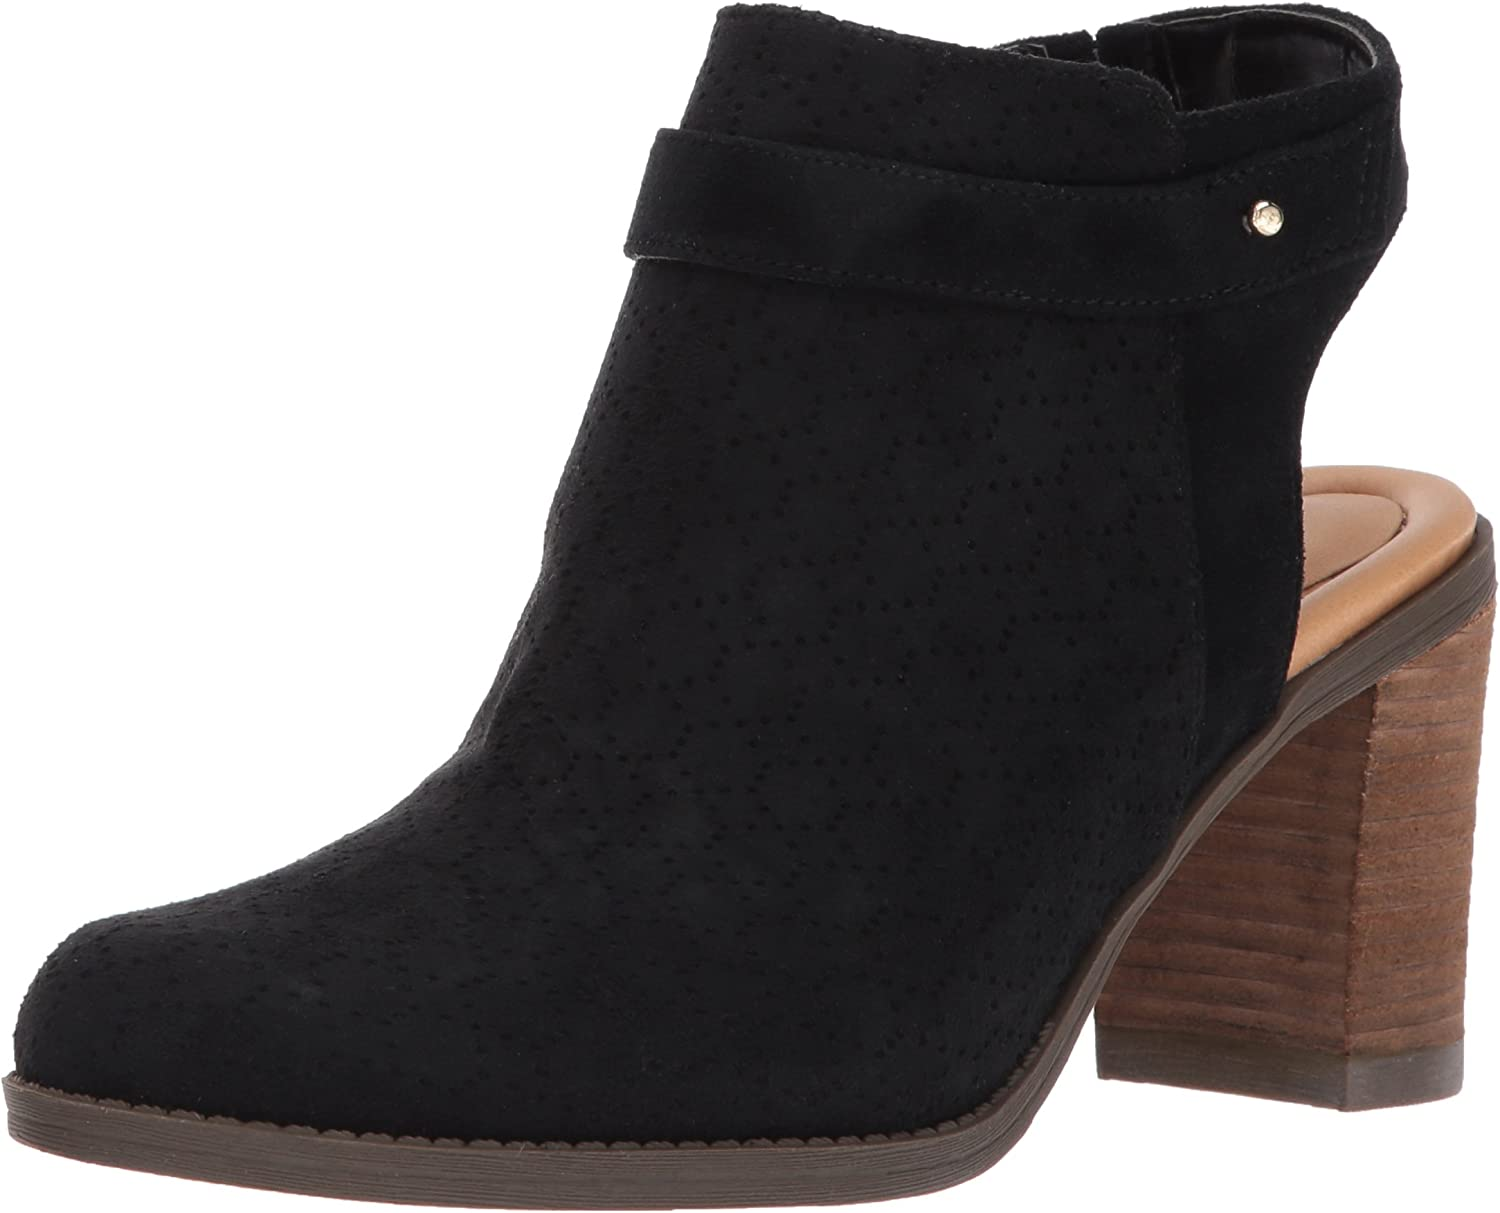 Dr. Scholl's shoes Womens Look Ankle Bootie